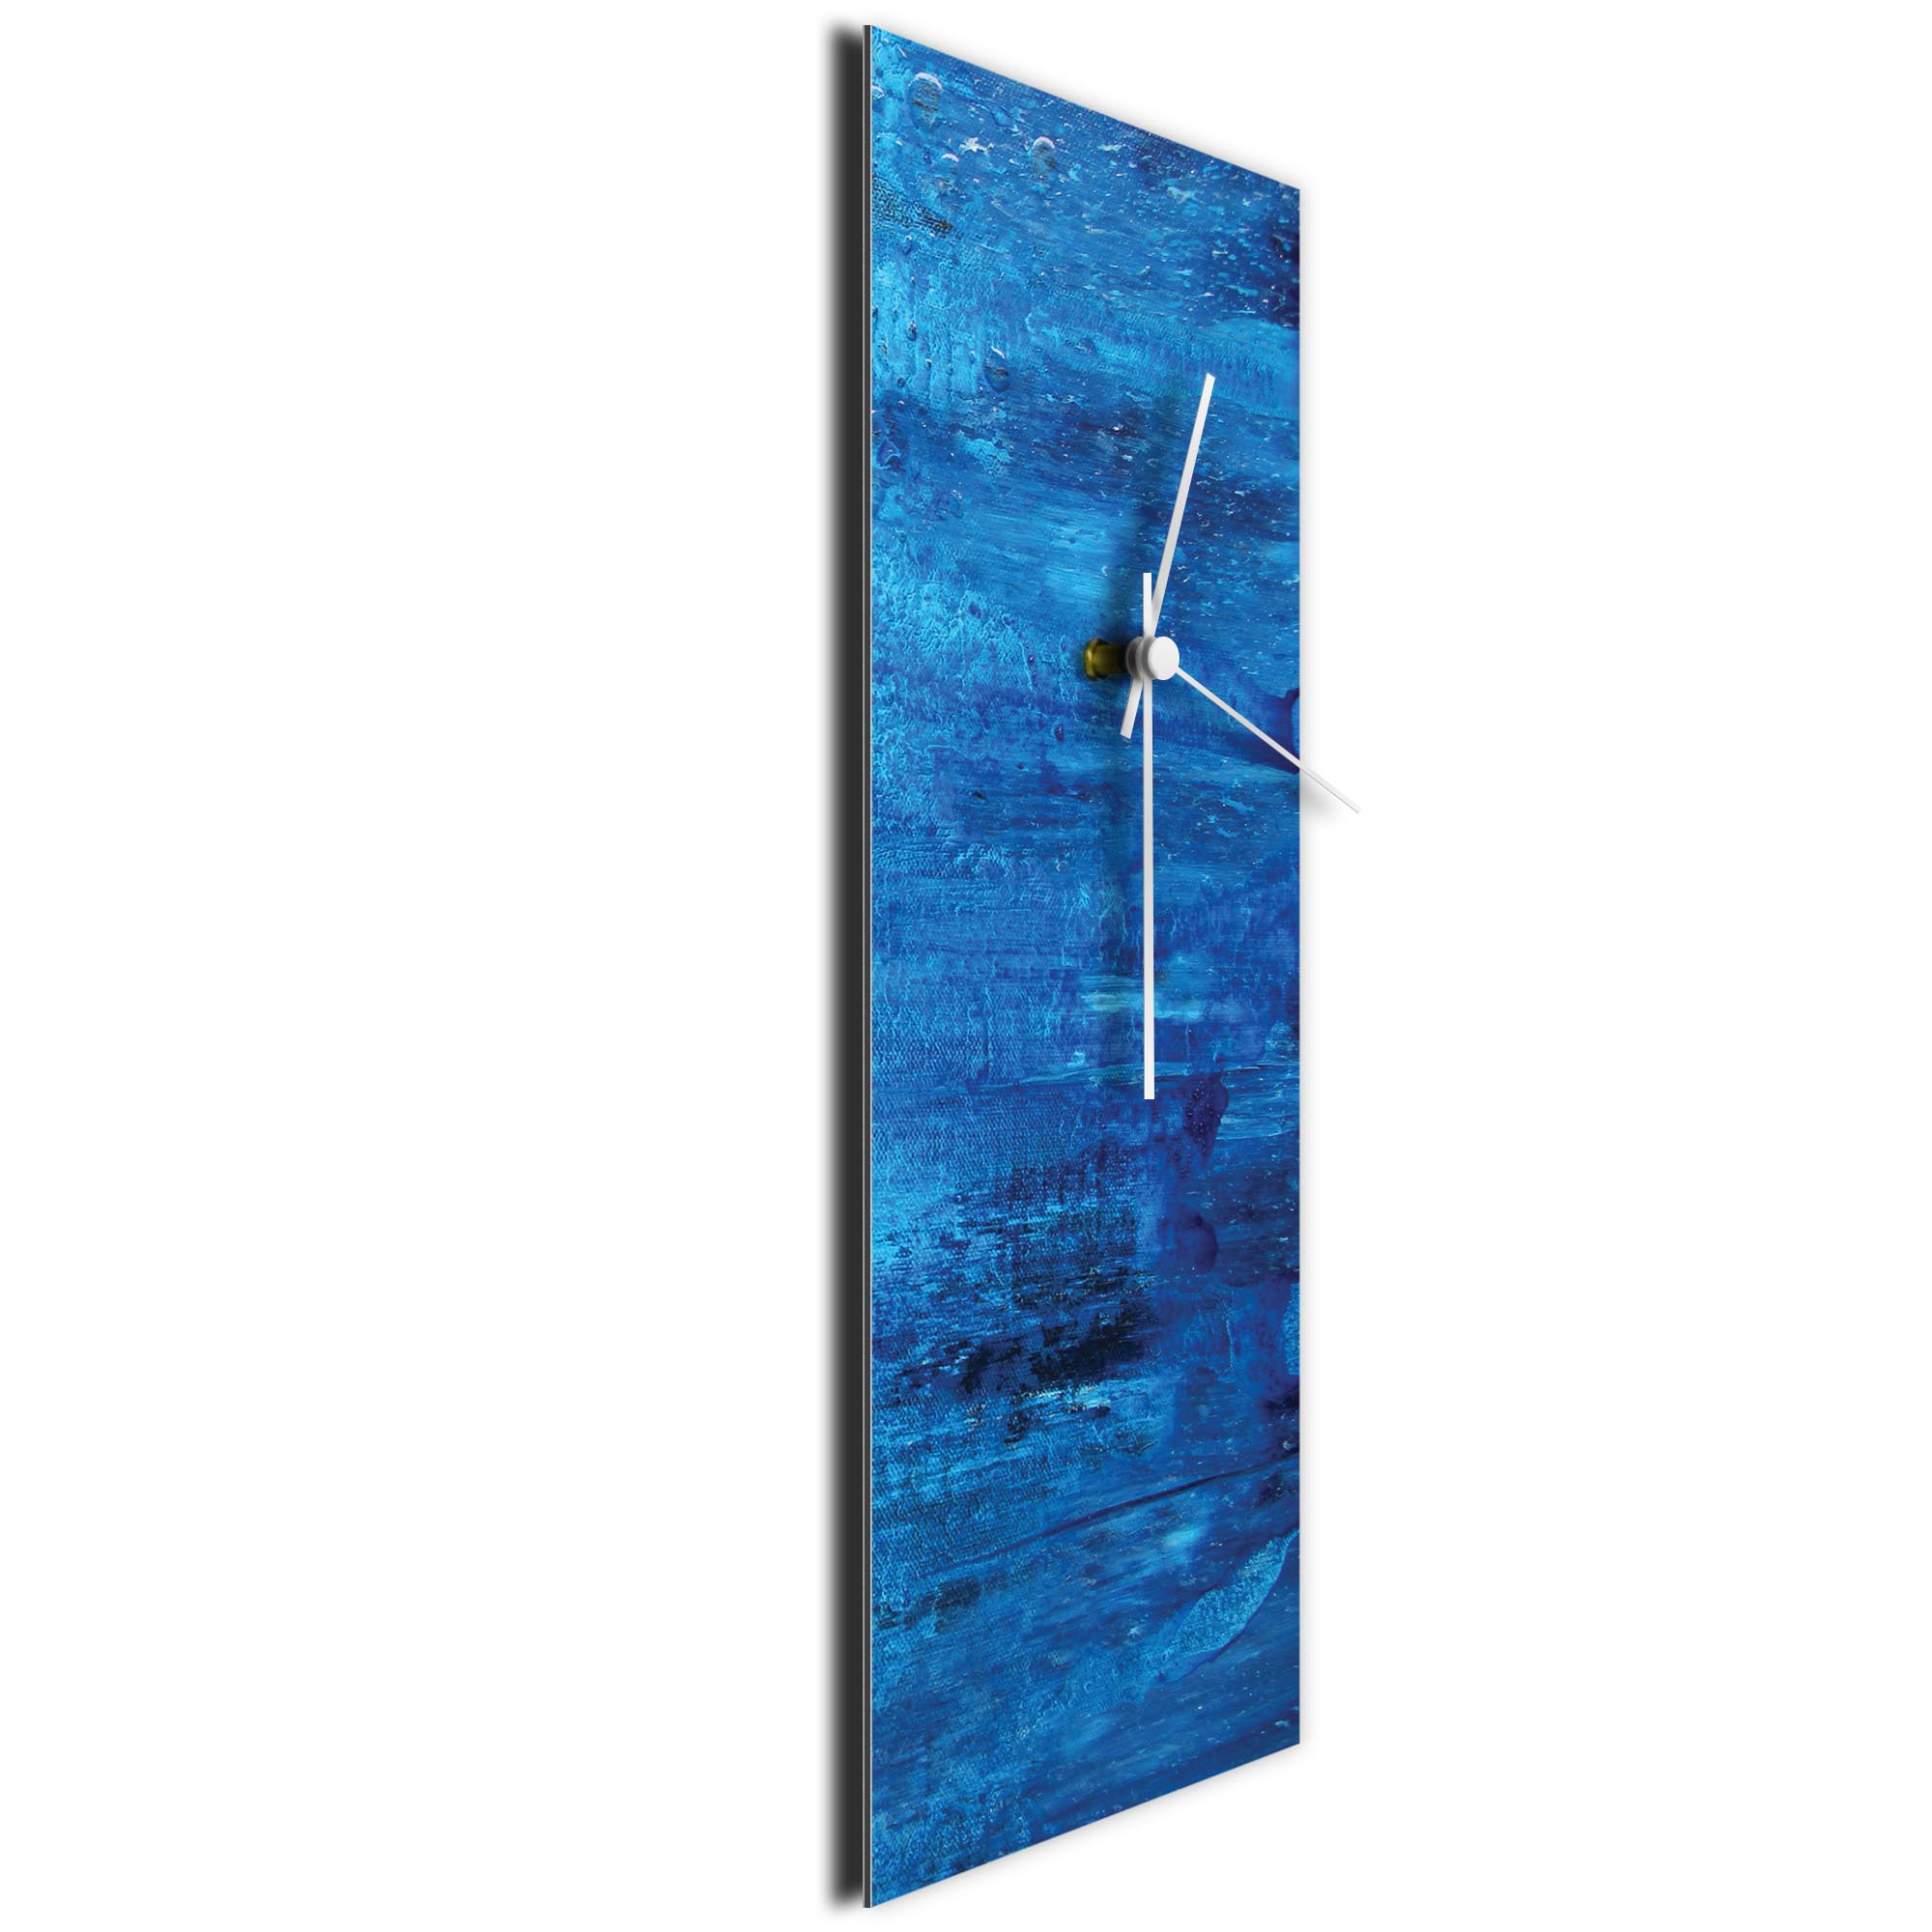 City Blue v2 Clock Large by Mendo Vasilevski - Urban Abstract Home Decor - Image 3